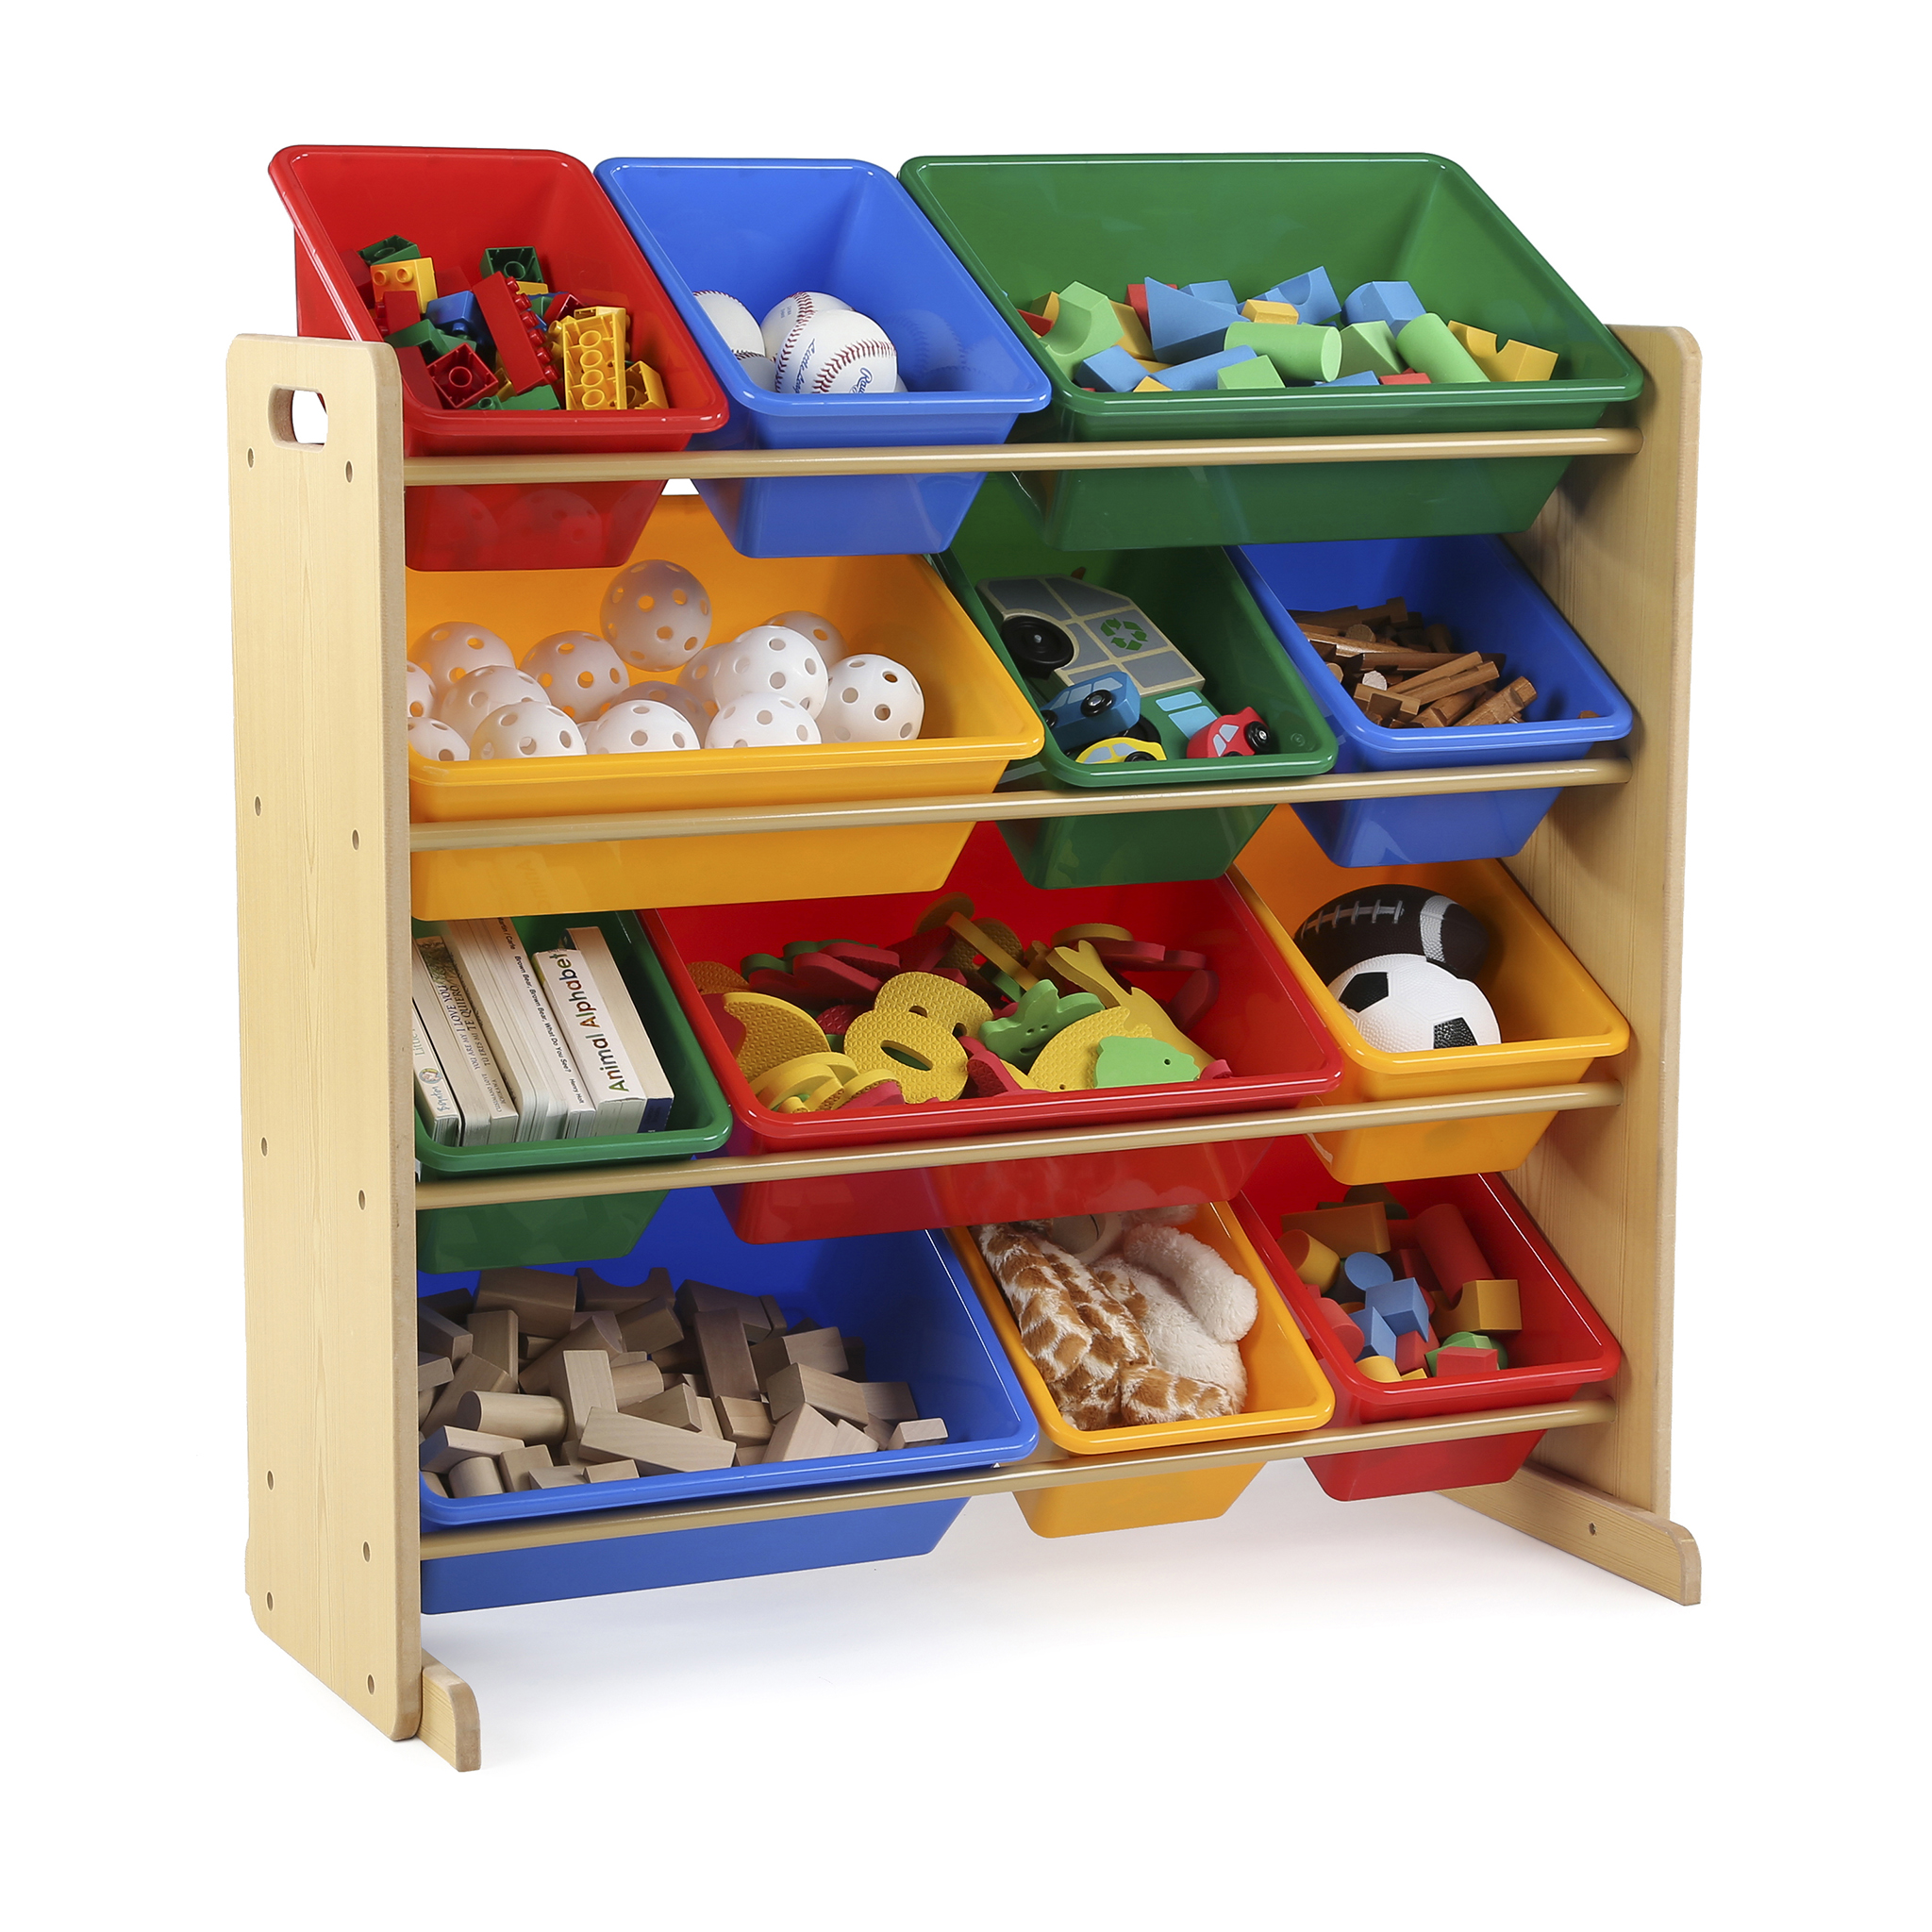 Tot Tutors Kids Toy Storage Organizer with 12 Plastic Bins, Multiple Colors by Humble Crew